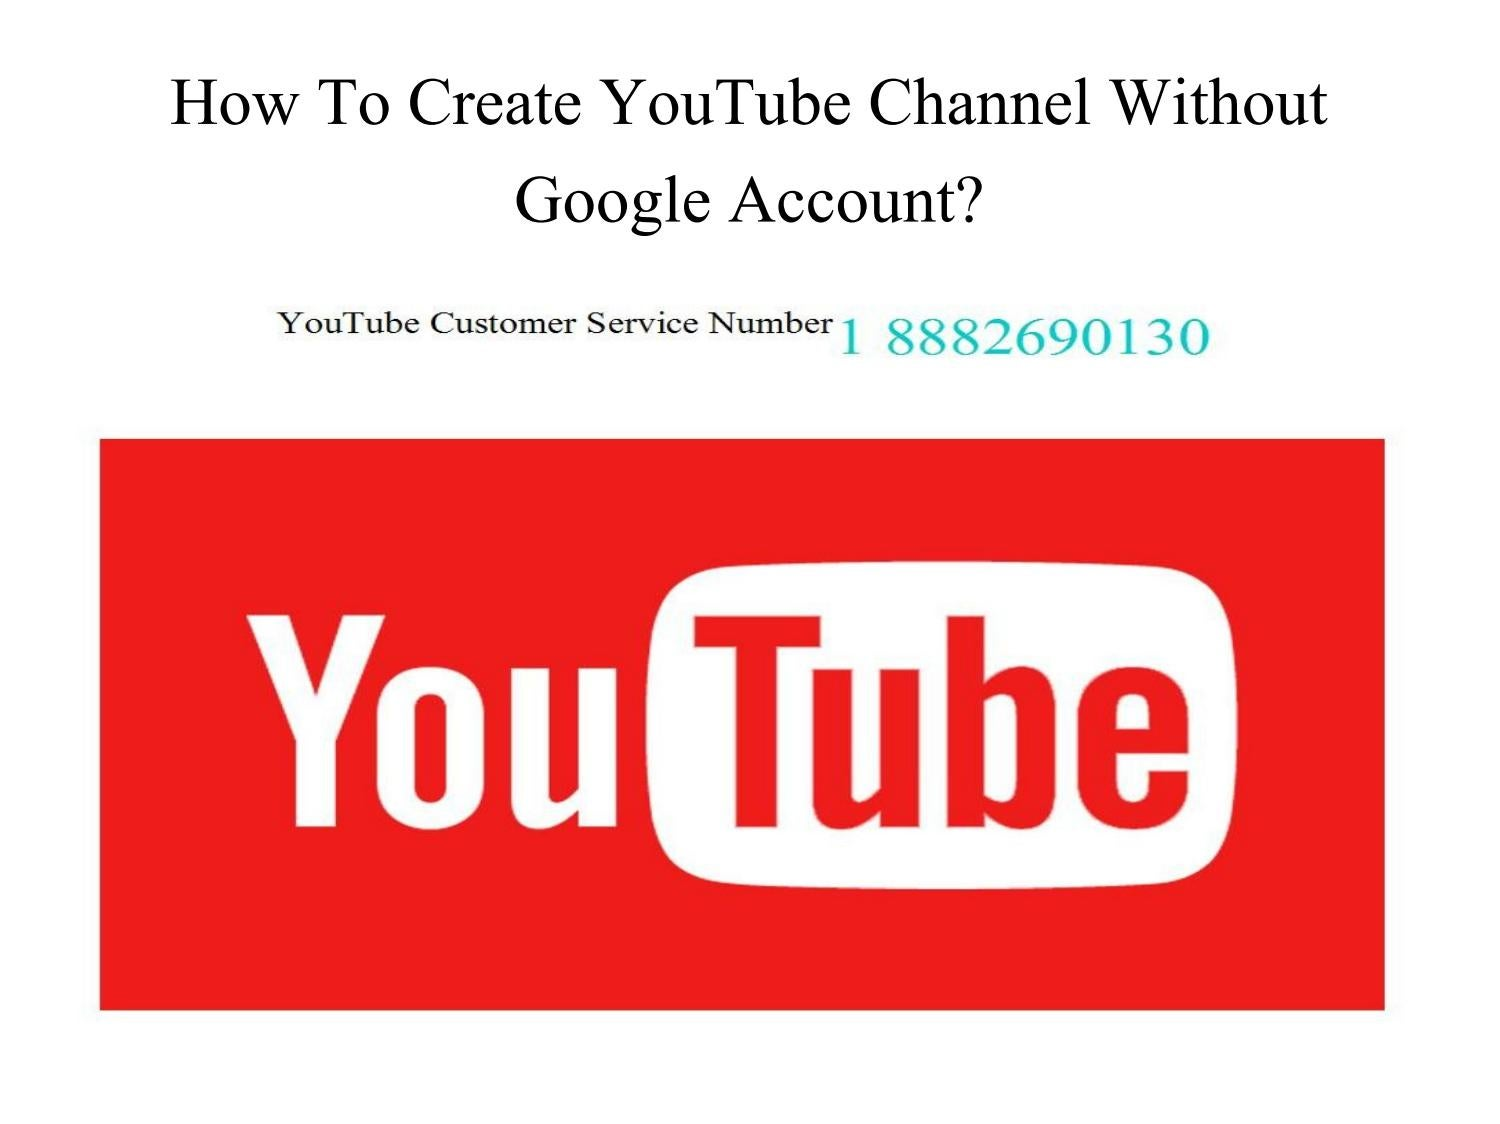 How to create youtube channel without google account? by